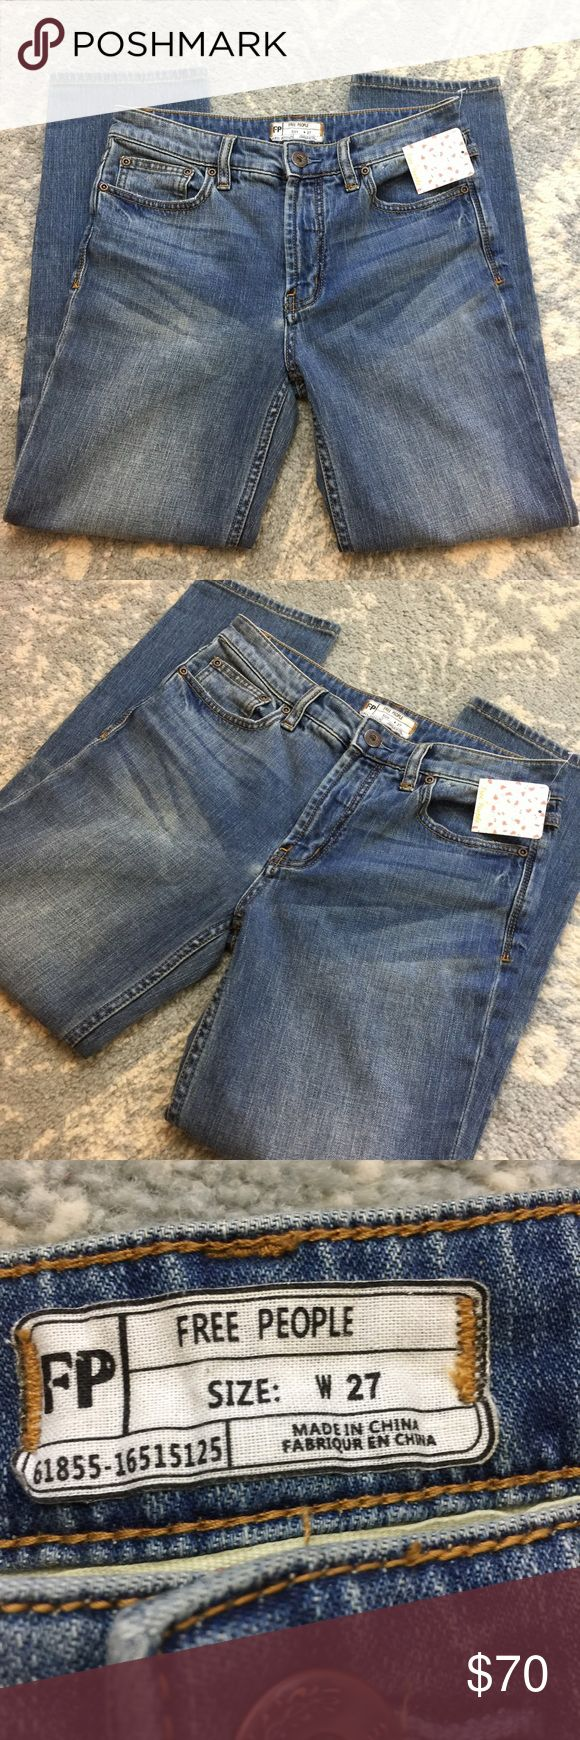 NWT Free People High Rise Cropped Denim Jeans Free People Jeans new with tags and is cropped with High Rise top and all the typical bells and whistles Jeans have! Free People Jeans